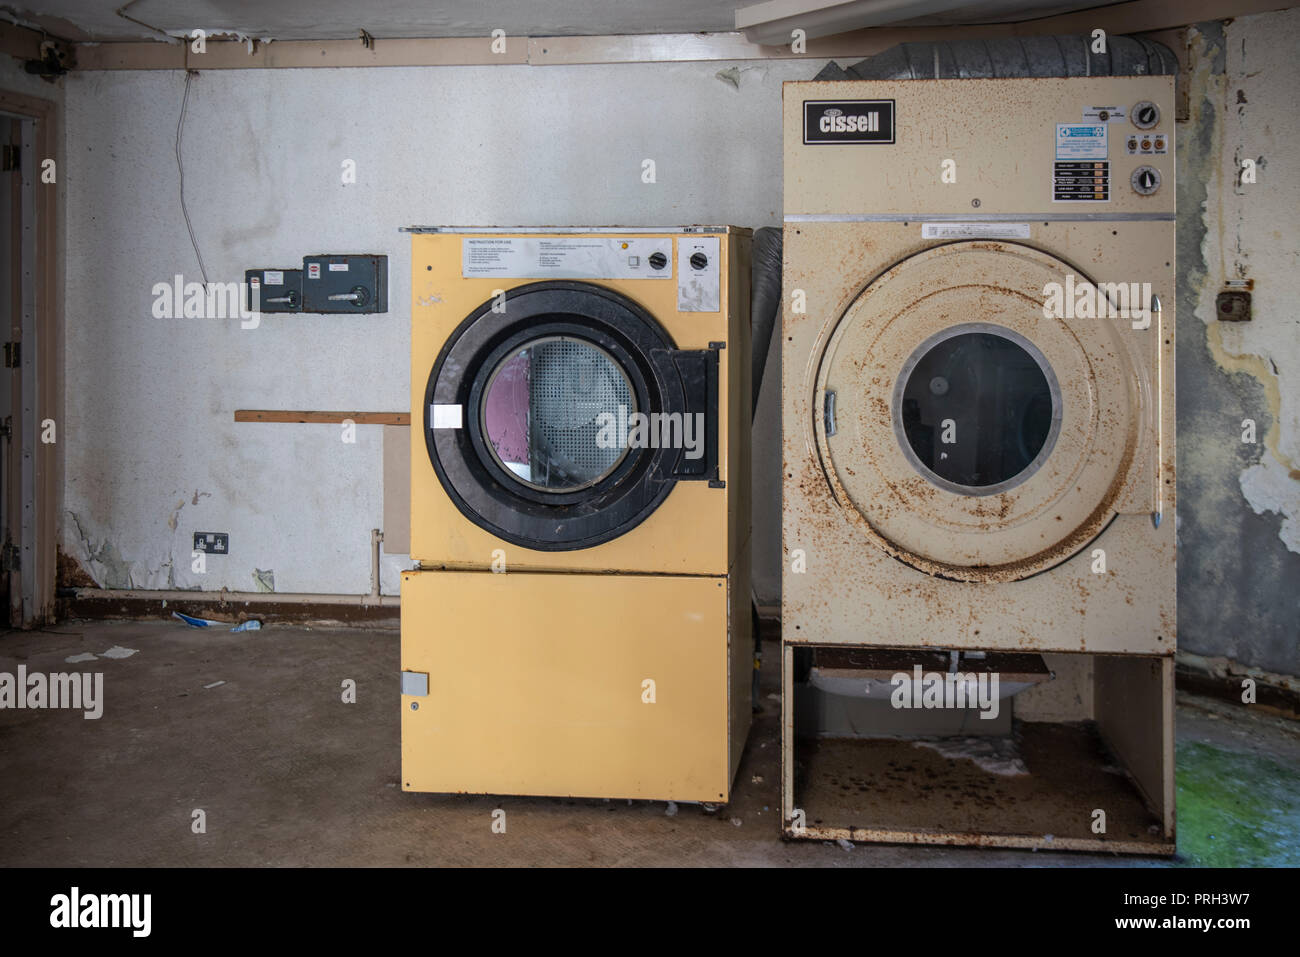 Industrial tumble drier and washing machine in an abandoned building. - Stock Image